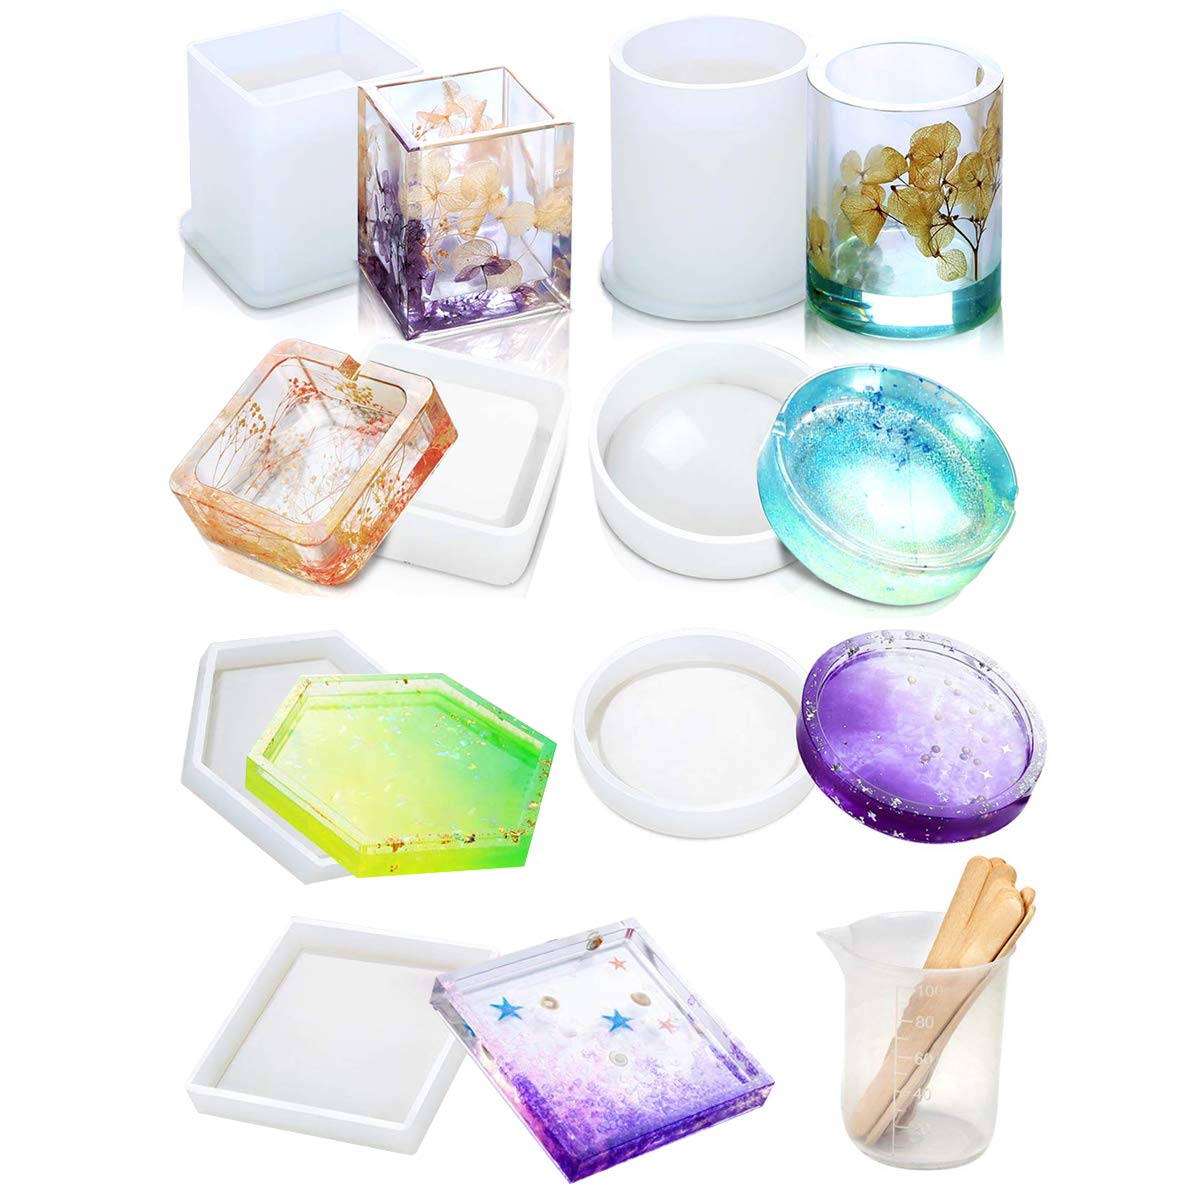 Resin Silicone Molds,9 Pack DIY Coaster Epoxy Casting Molds,Concrete,Cement,Home Decoration,Silicone Molds for Concrete, DIY Coaster/Flower Pot/Ashtray/Pen Candle Soap Holder by MSYG